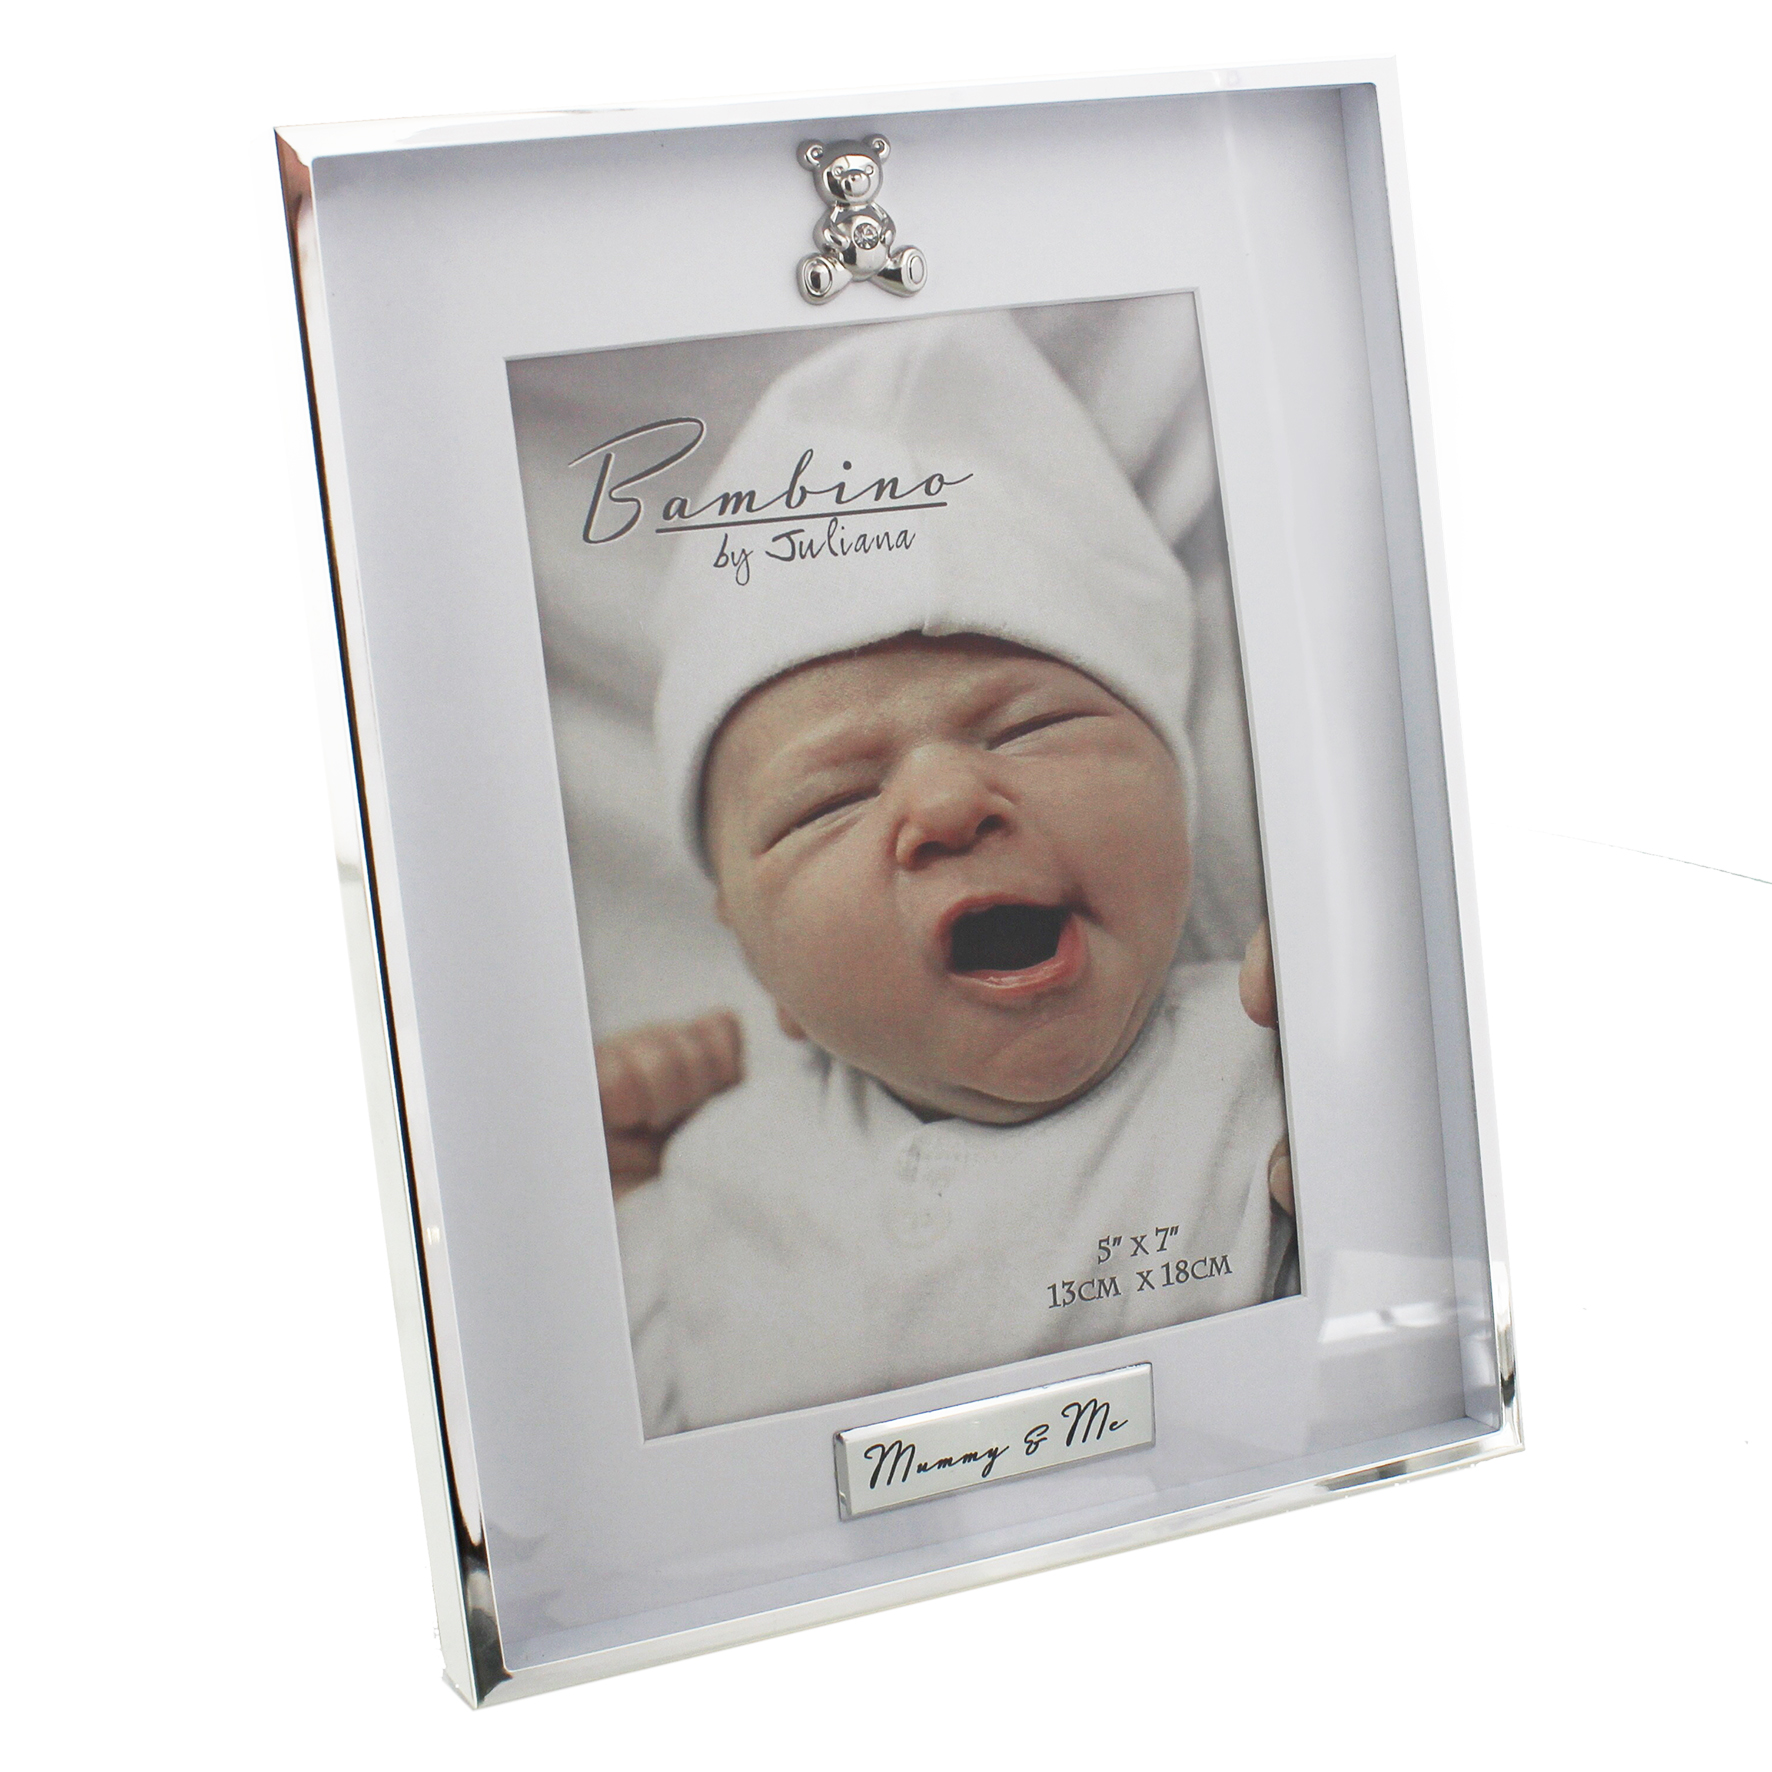 Bambino Silver Plated Photo Frame Mummy And Me 5×7